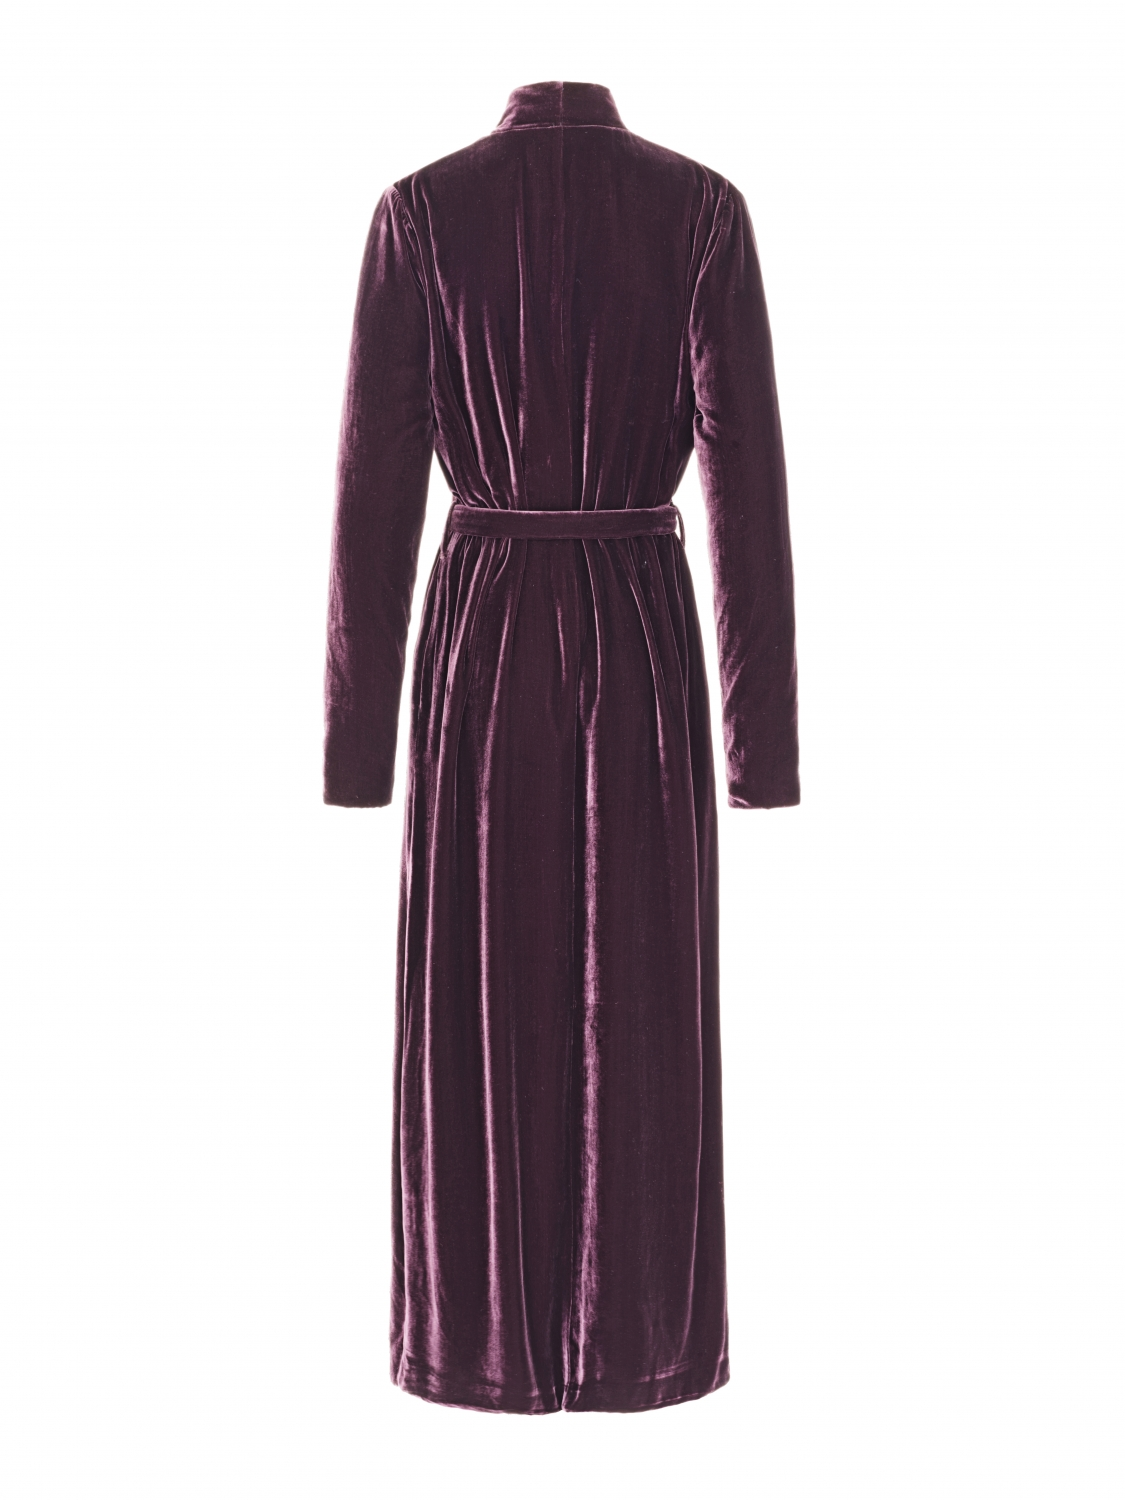 Luxury Dressing Gown Aubergine silk velvet - Shop all - Vibeke Scott